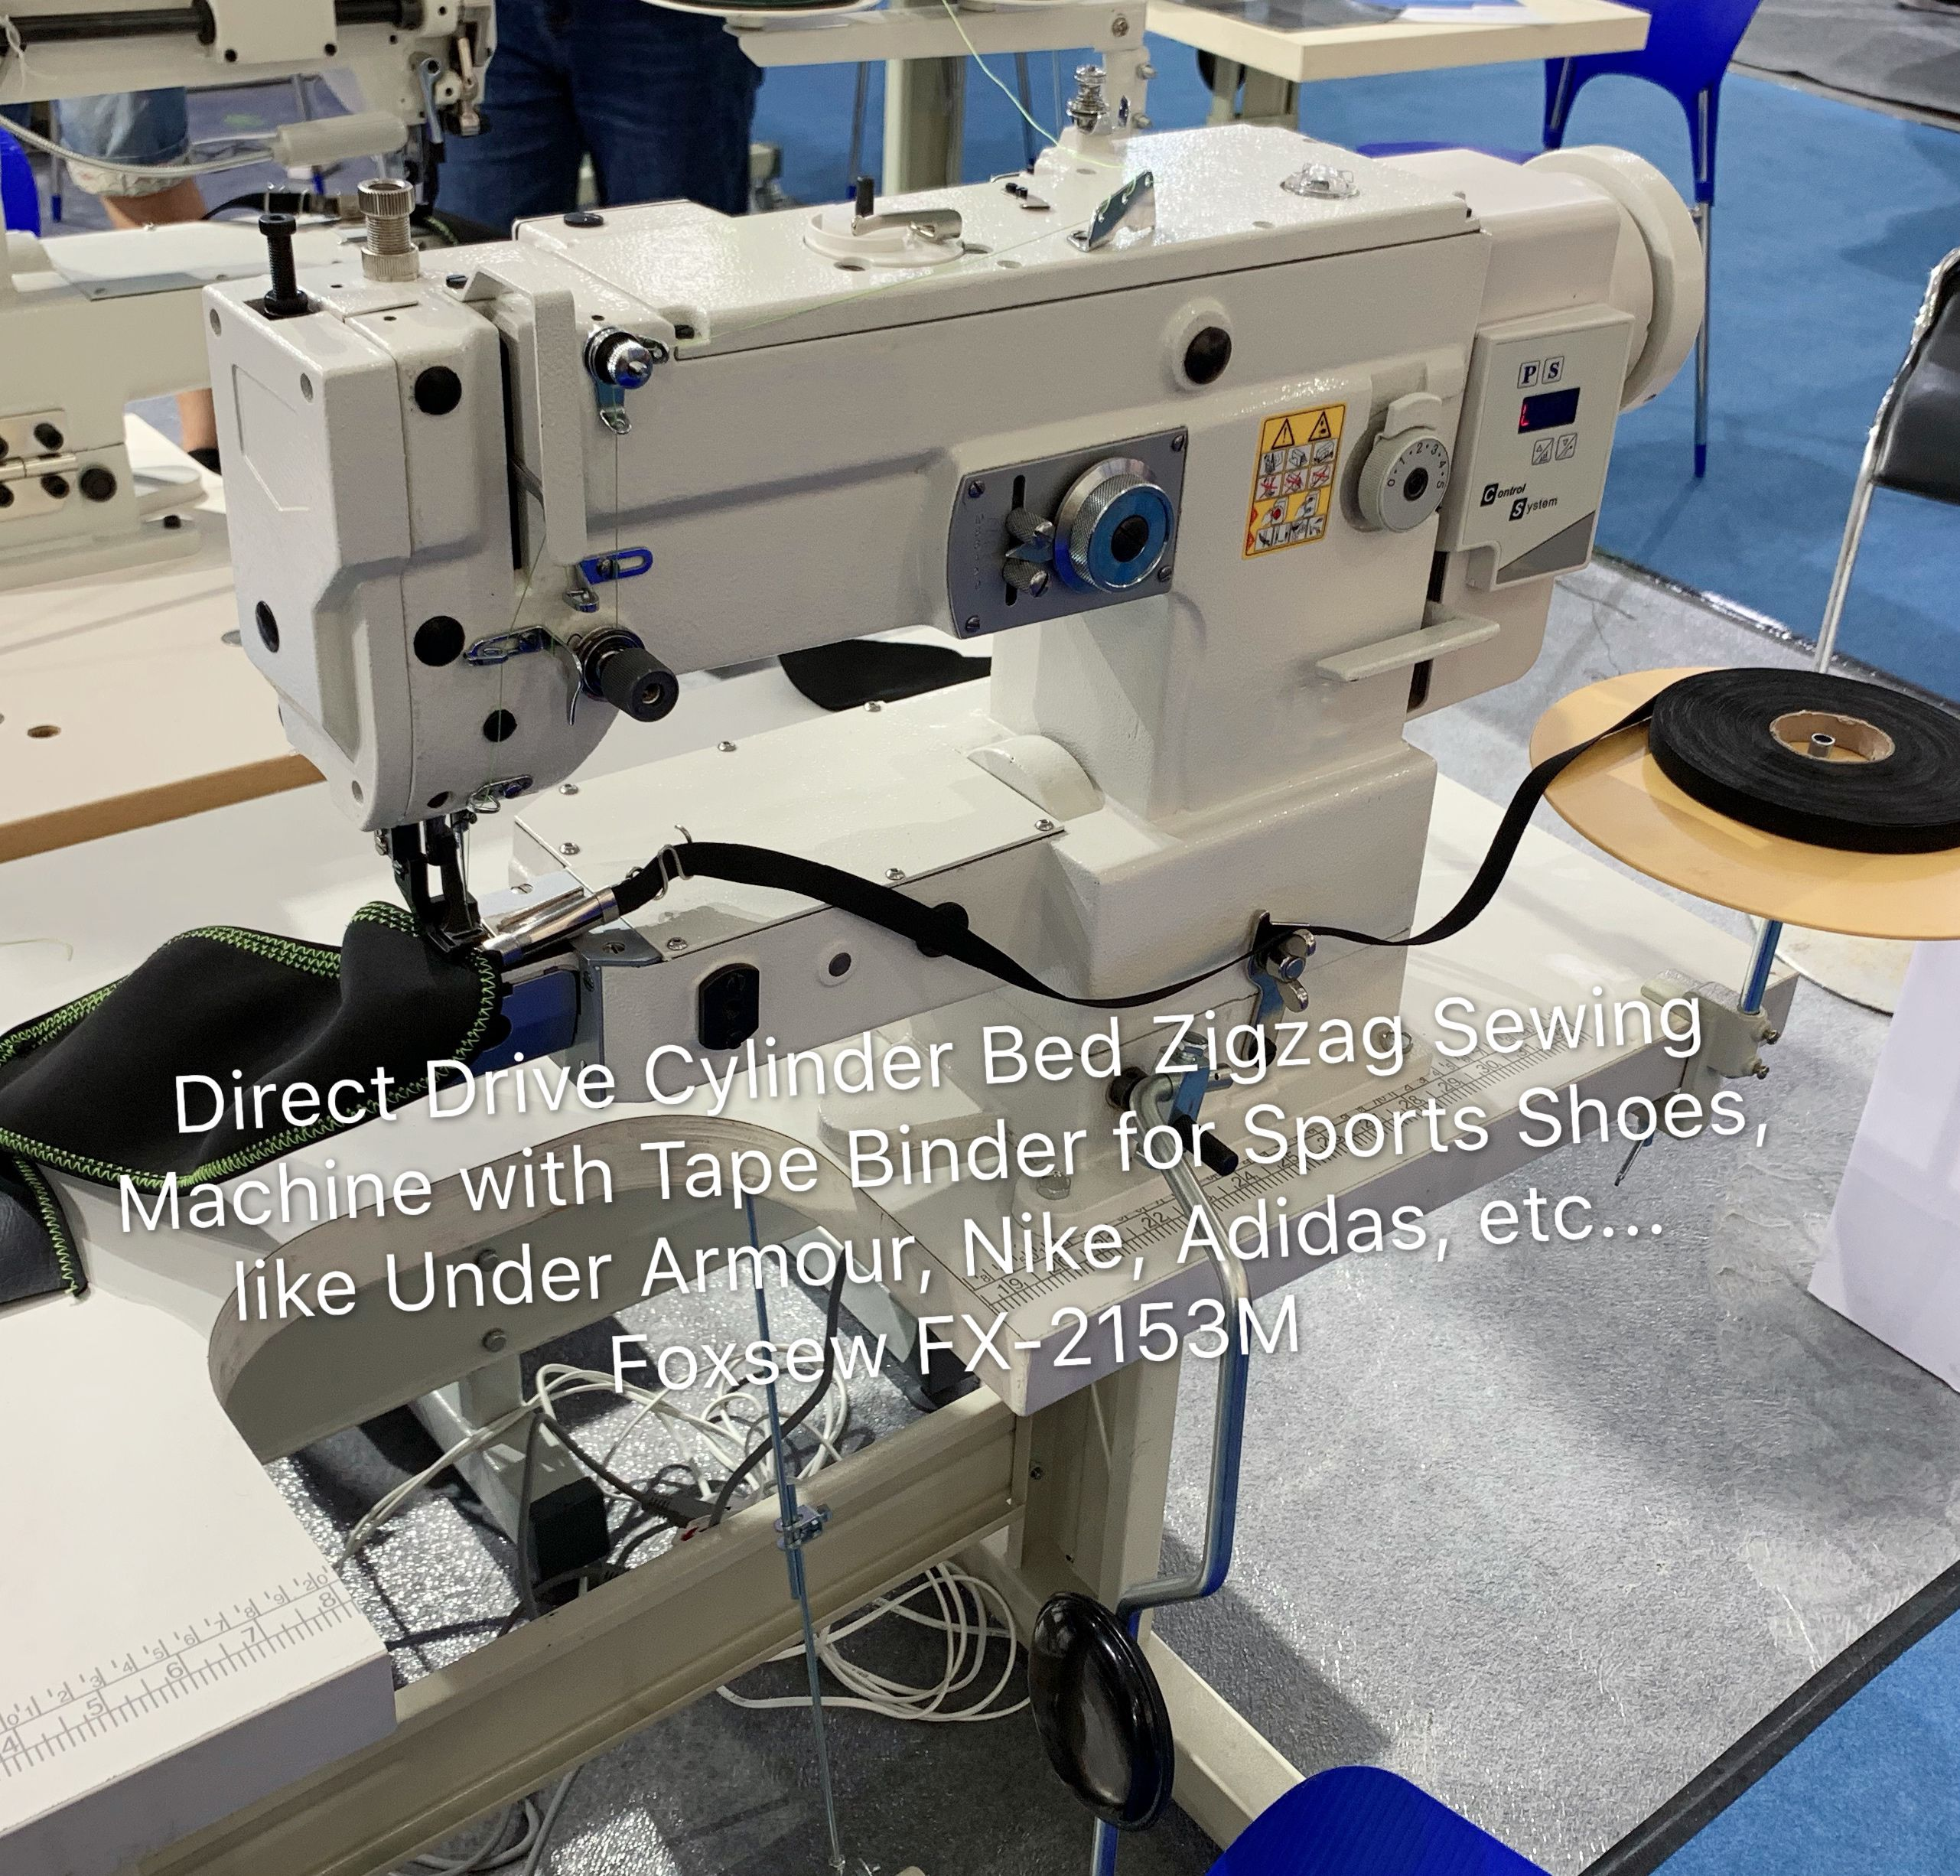 Direct Drive Cylinder Bed Zigzag Sewing Machine for Tape Binding on Sports Shoes Foxsew FX-2153M-01-003